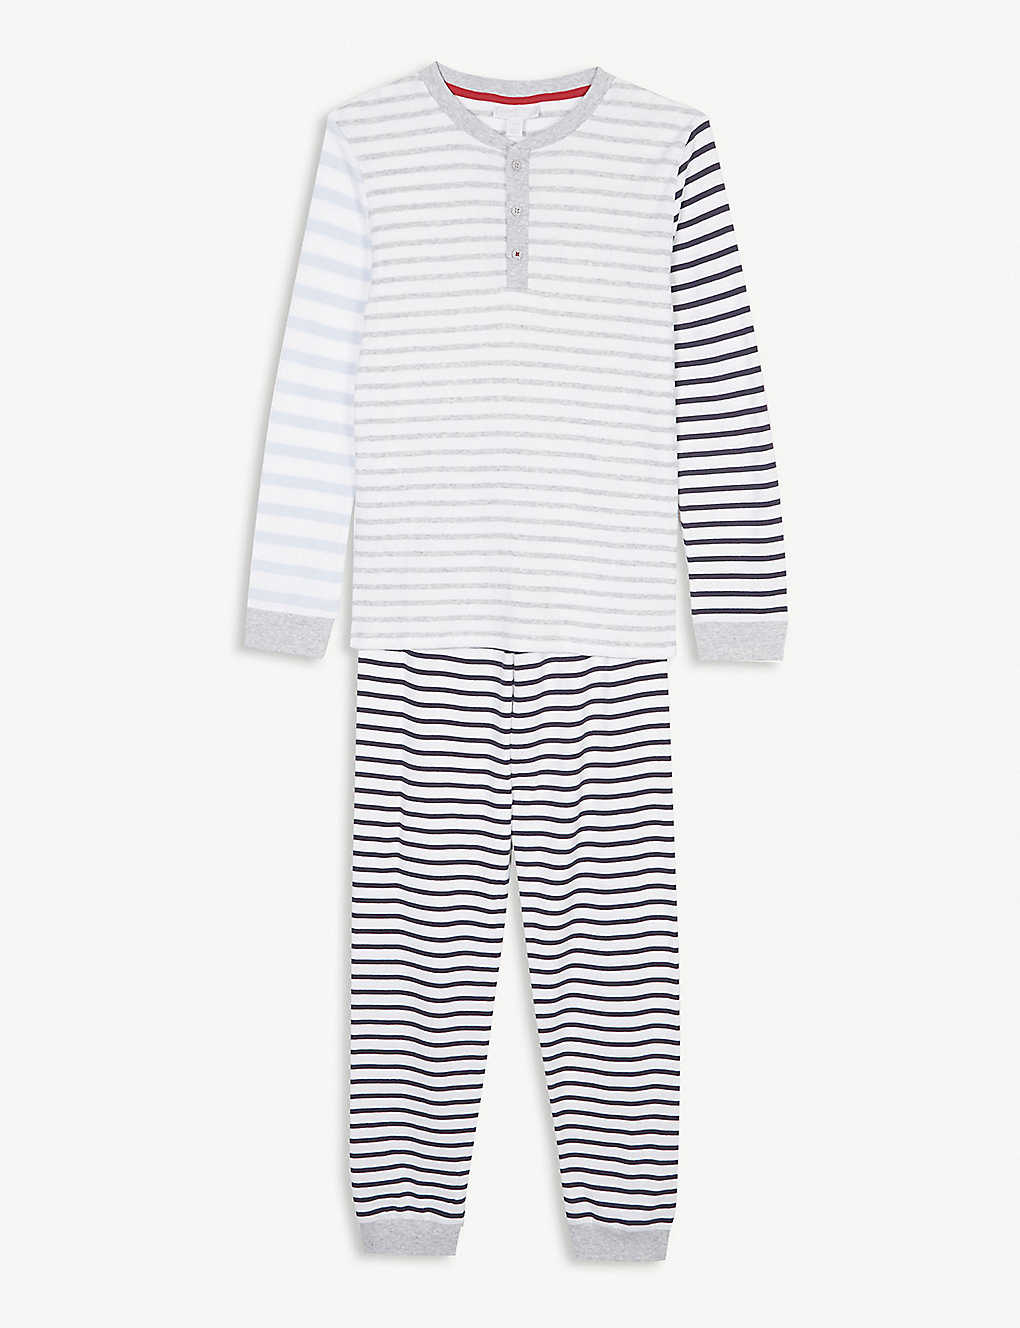 8ba1cdd8 THE LITTLE WHITE COMPANY - Henley striped cotton pyjamas 7-12 years ...